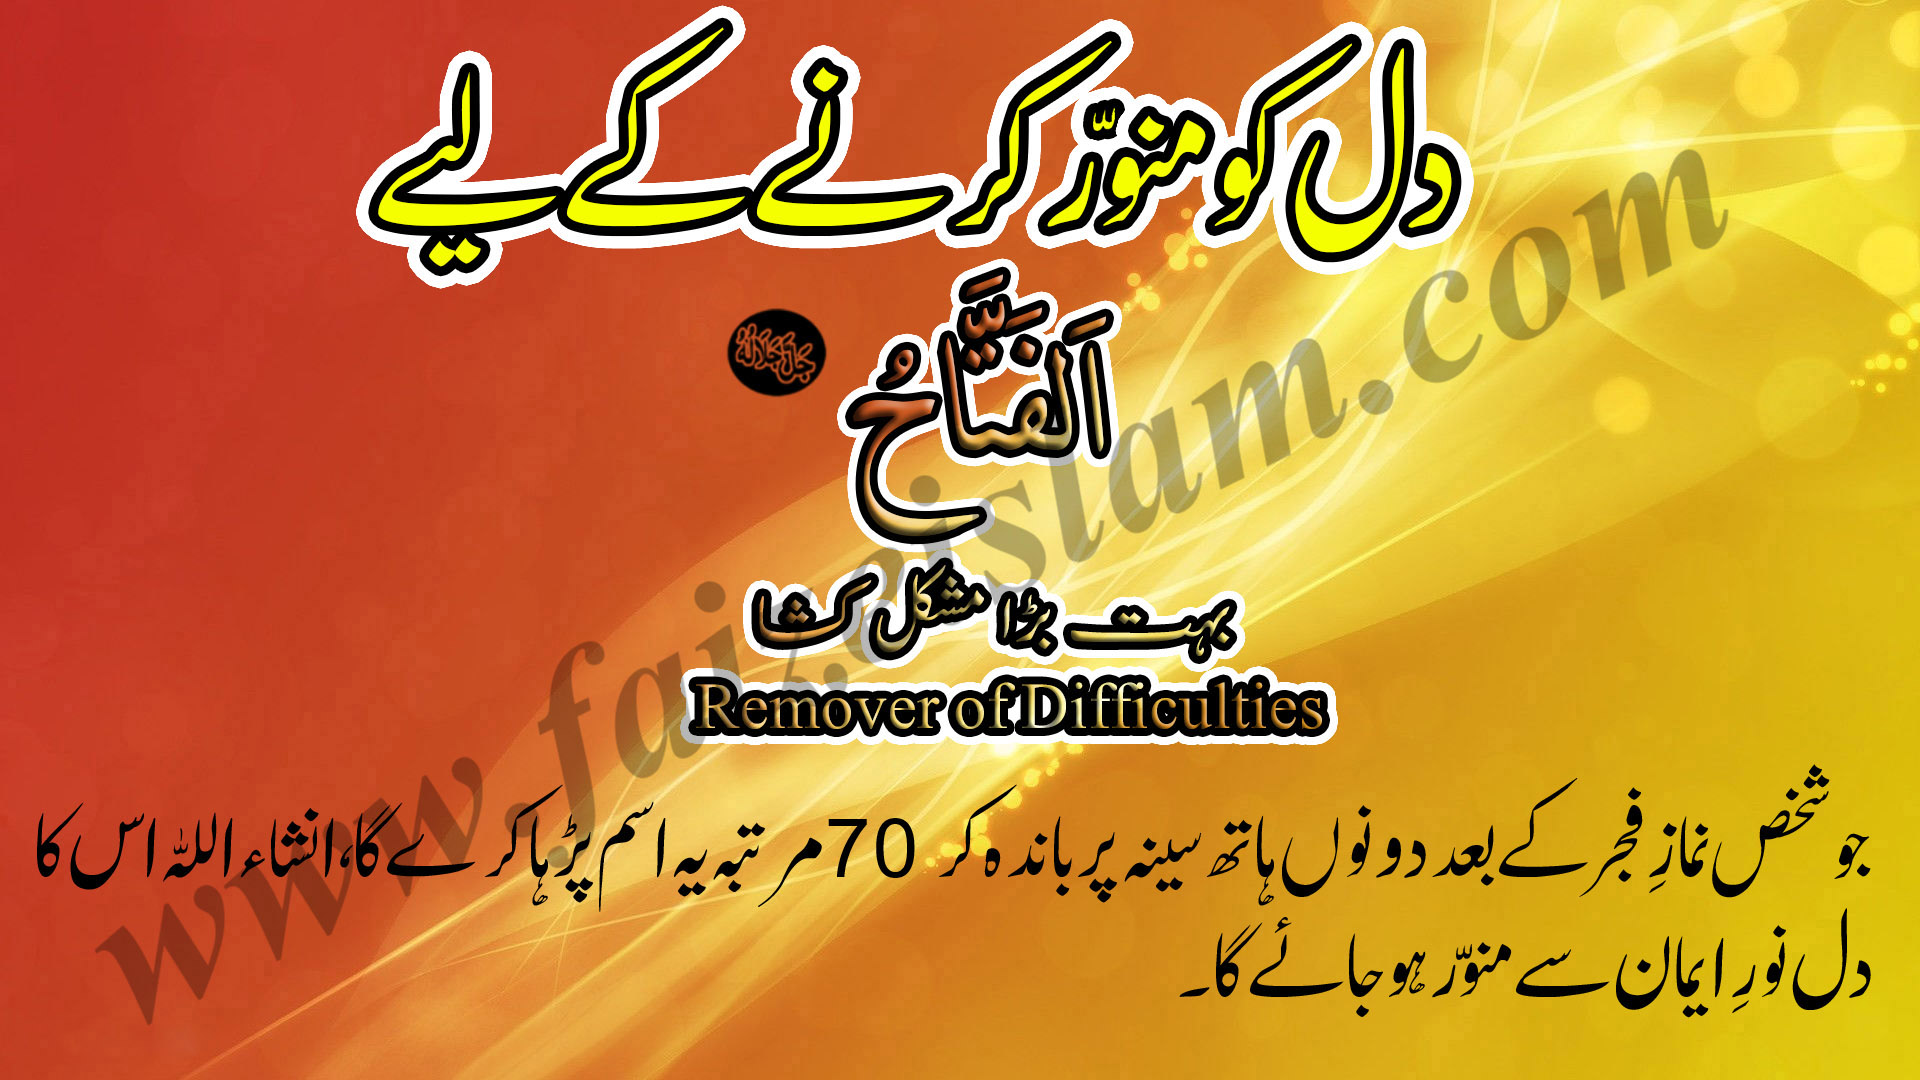 Photo of Dil Ko Munawwar Karnay Ke Liye Wazaif In Urdu